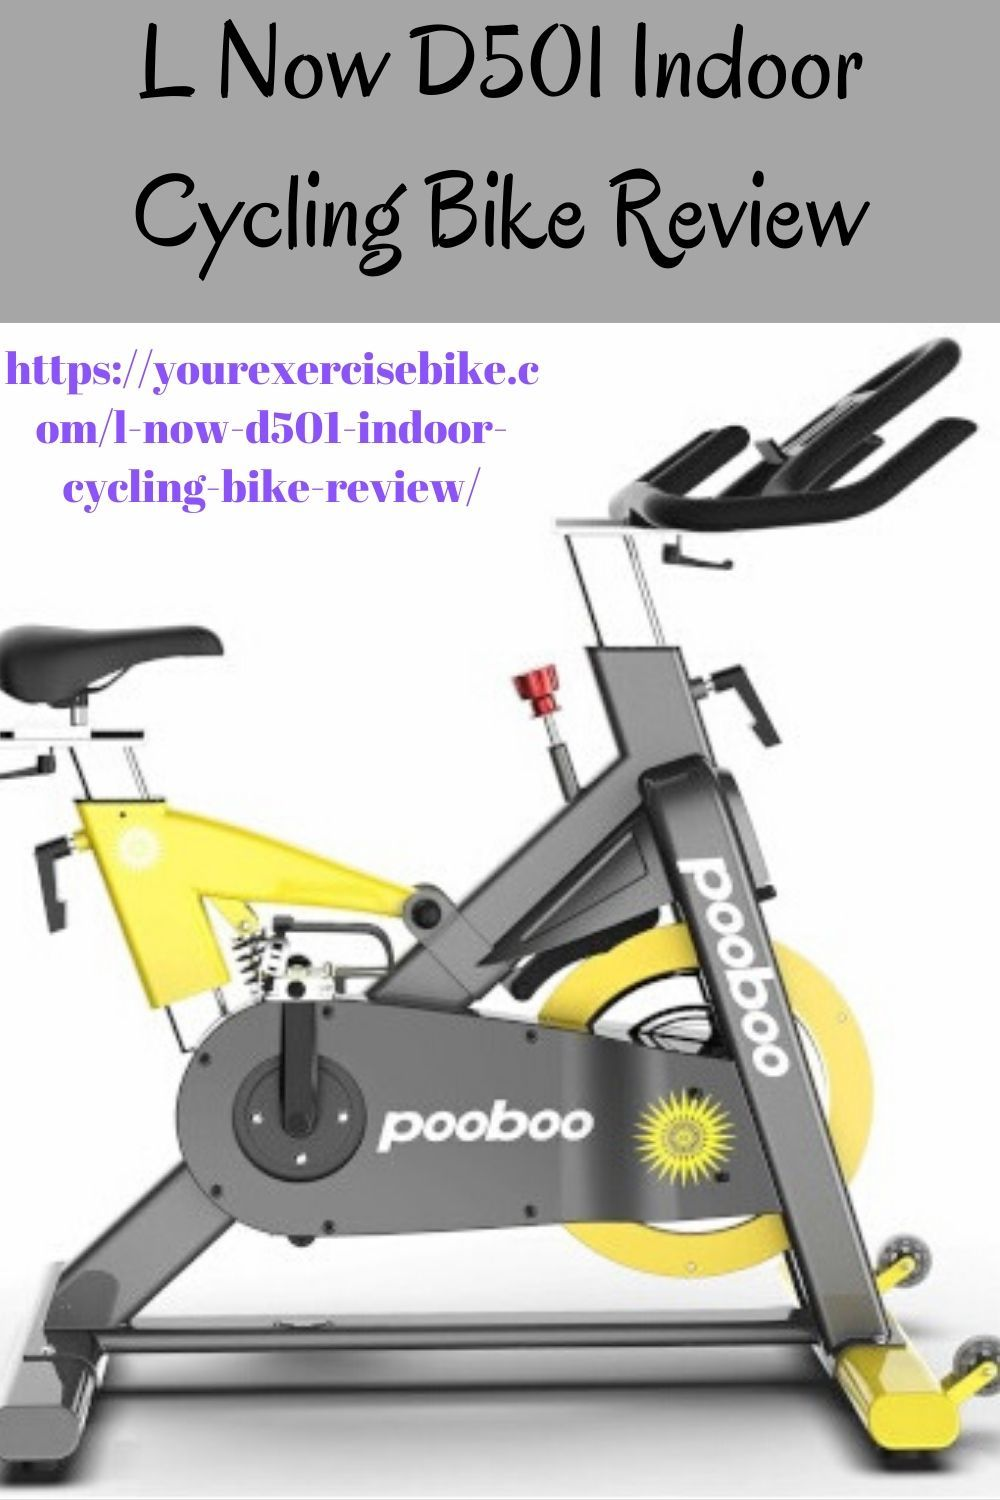 L Now D501 Indoor Cycling Bike Review In 2020